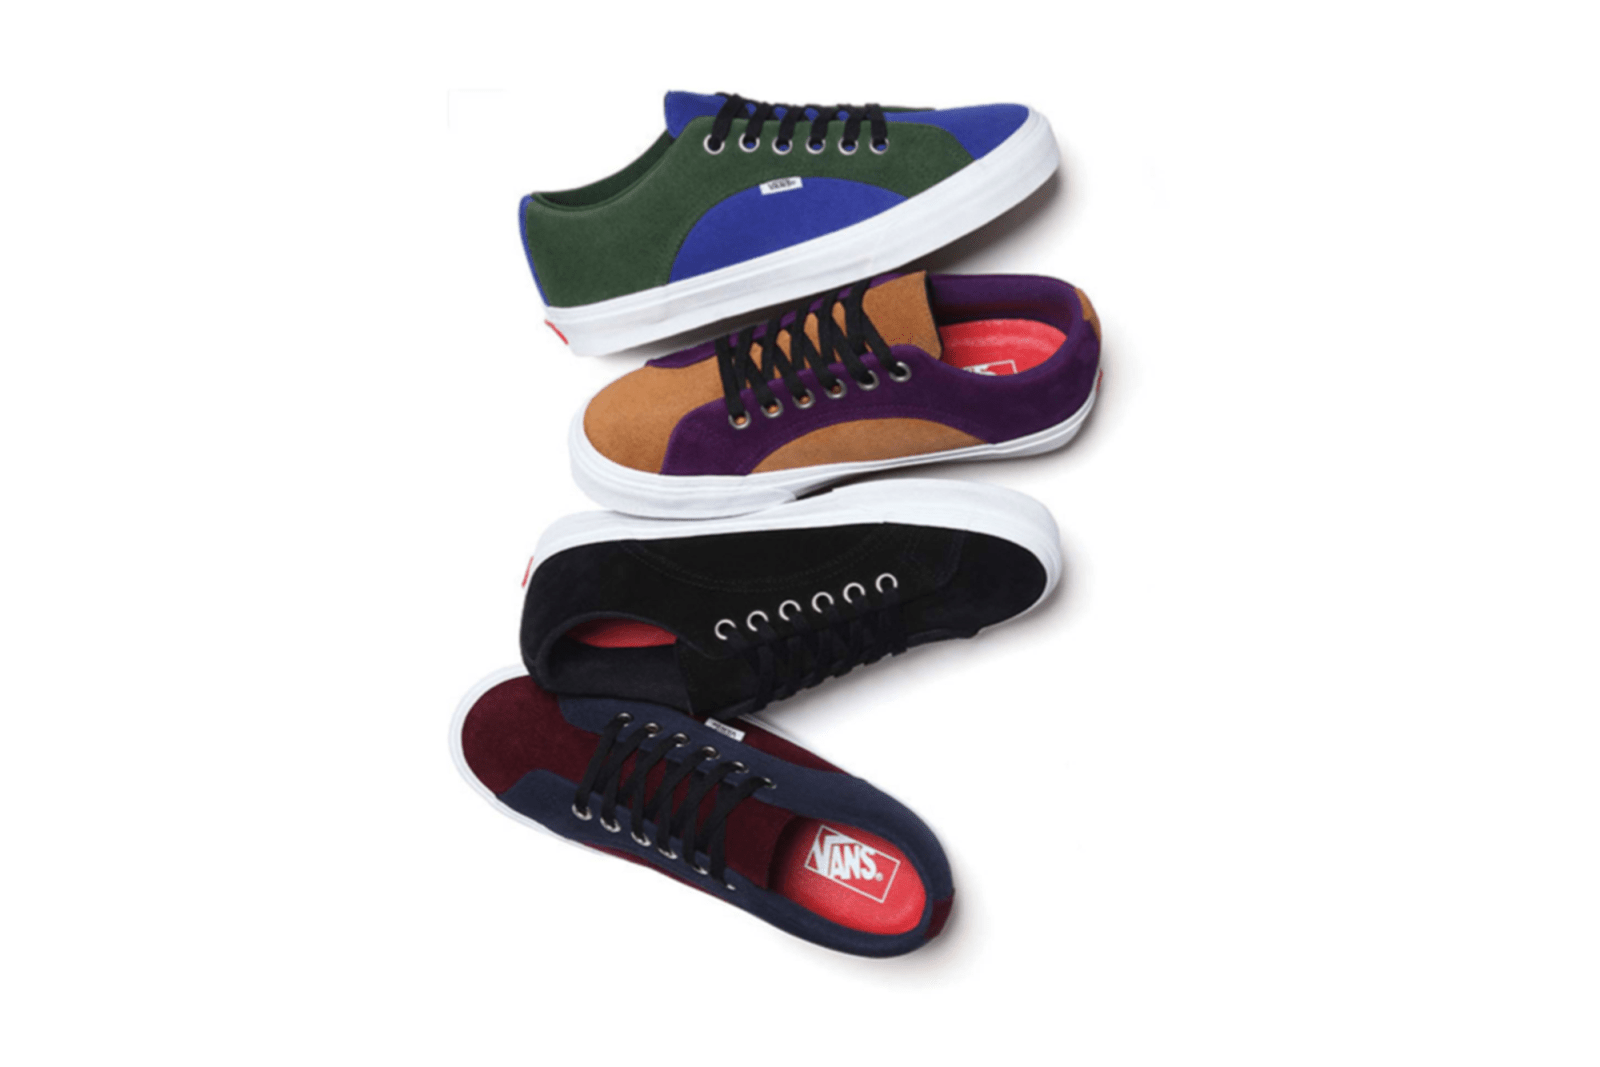 VF Corp's Supreme Acquisition, History, Collaborations the north face vans timberland legacy james jebbia buy price new york